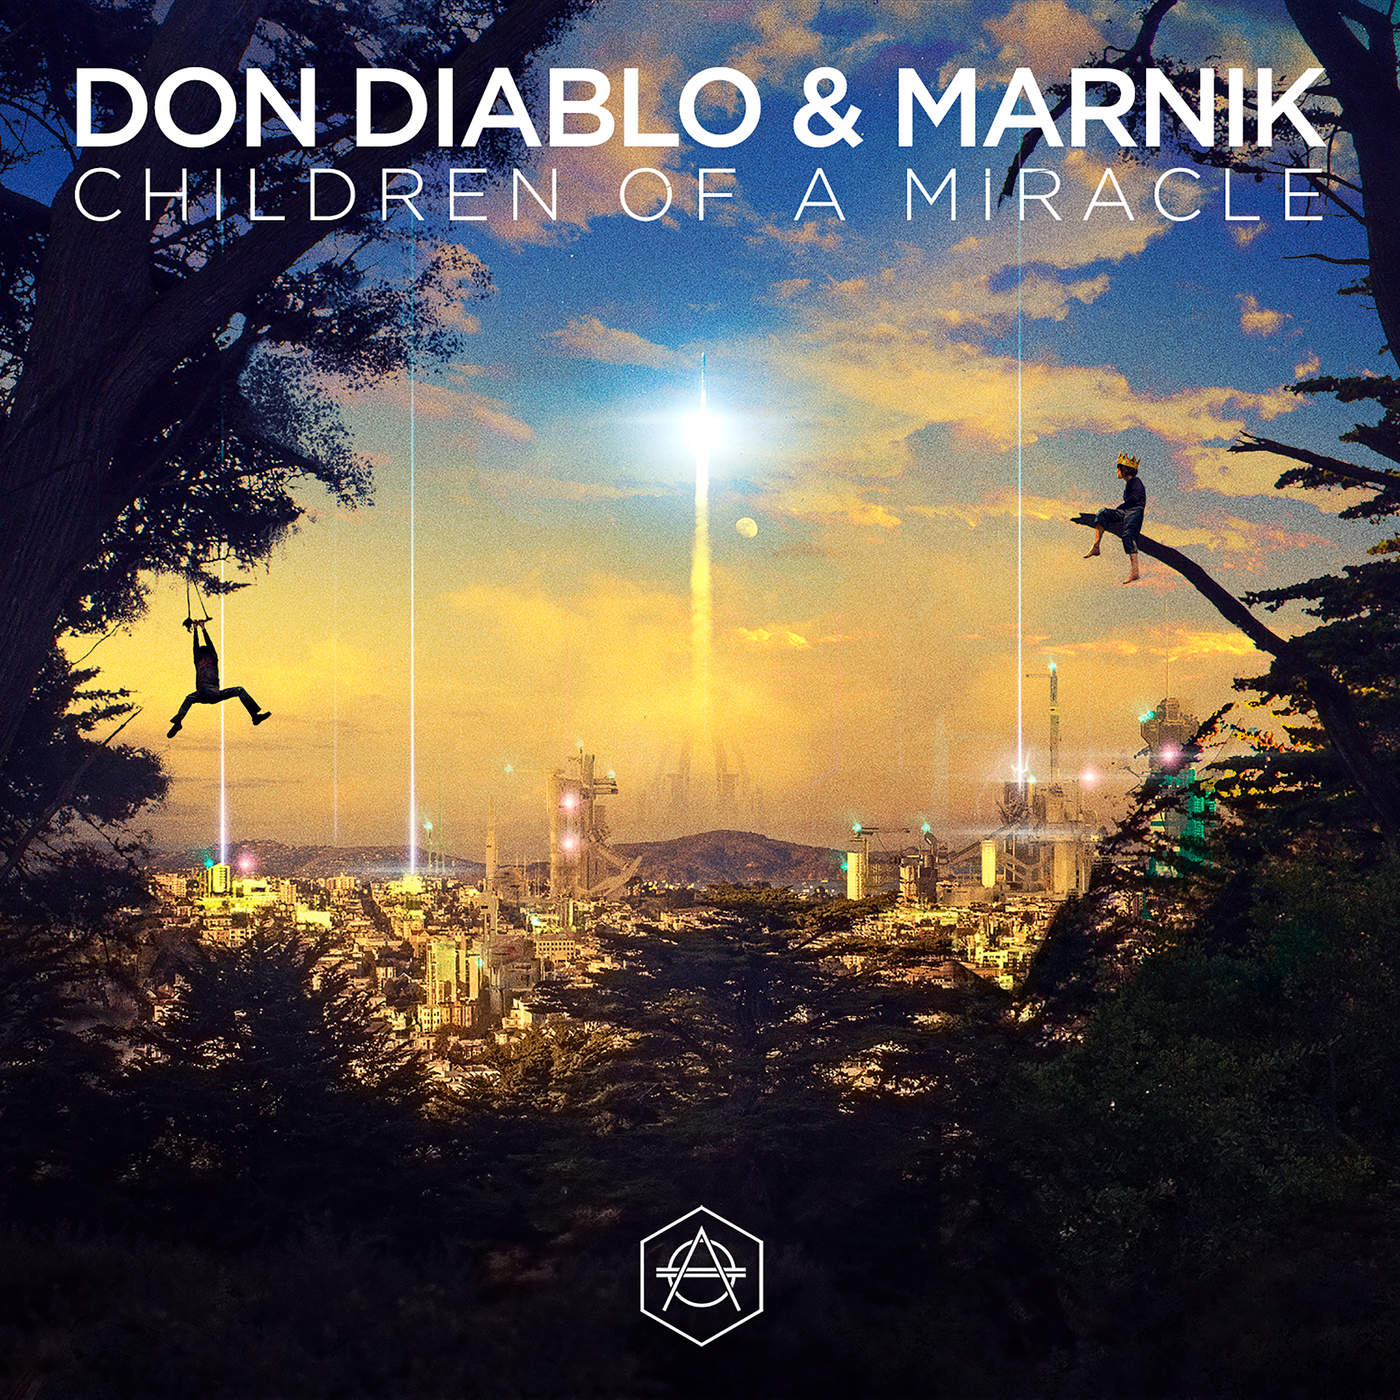 Don Diablo & Marnik - Children of a Miracle - Single Cover